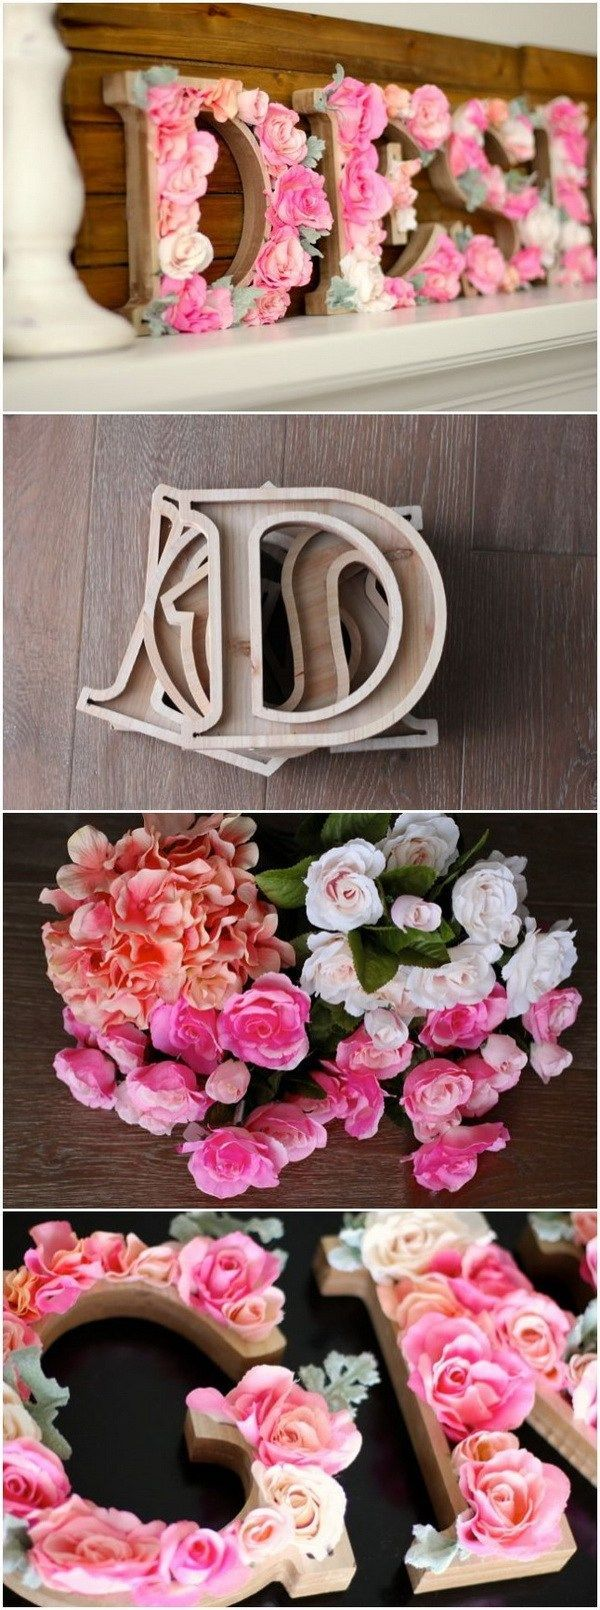 Best 25  Flower room ideas on Pinterest   Diy projects dorm room  Flower  letters and DIY party letters. Best 25  Flower room ideas on Pinterest   Diy projects dorm room